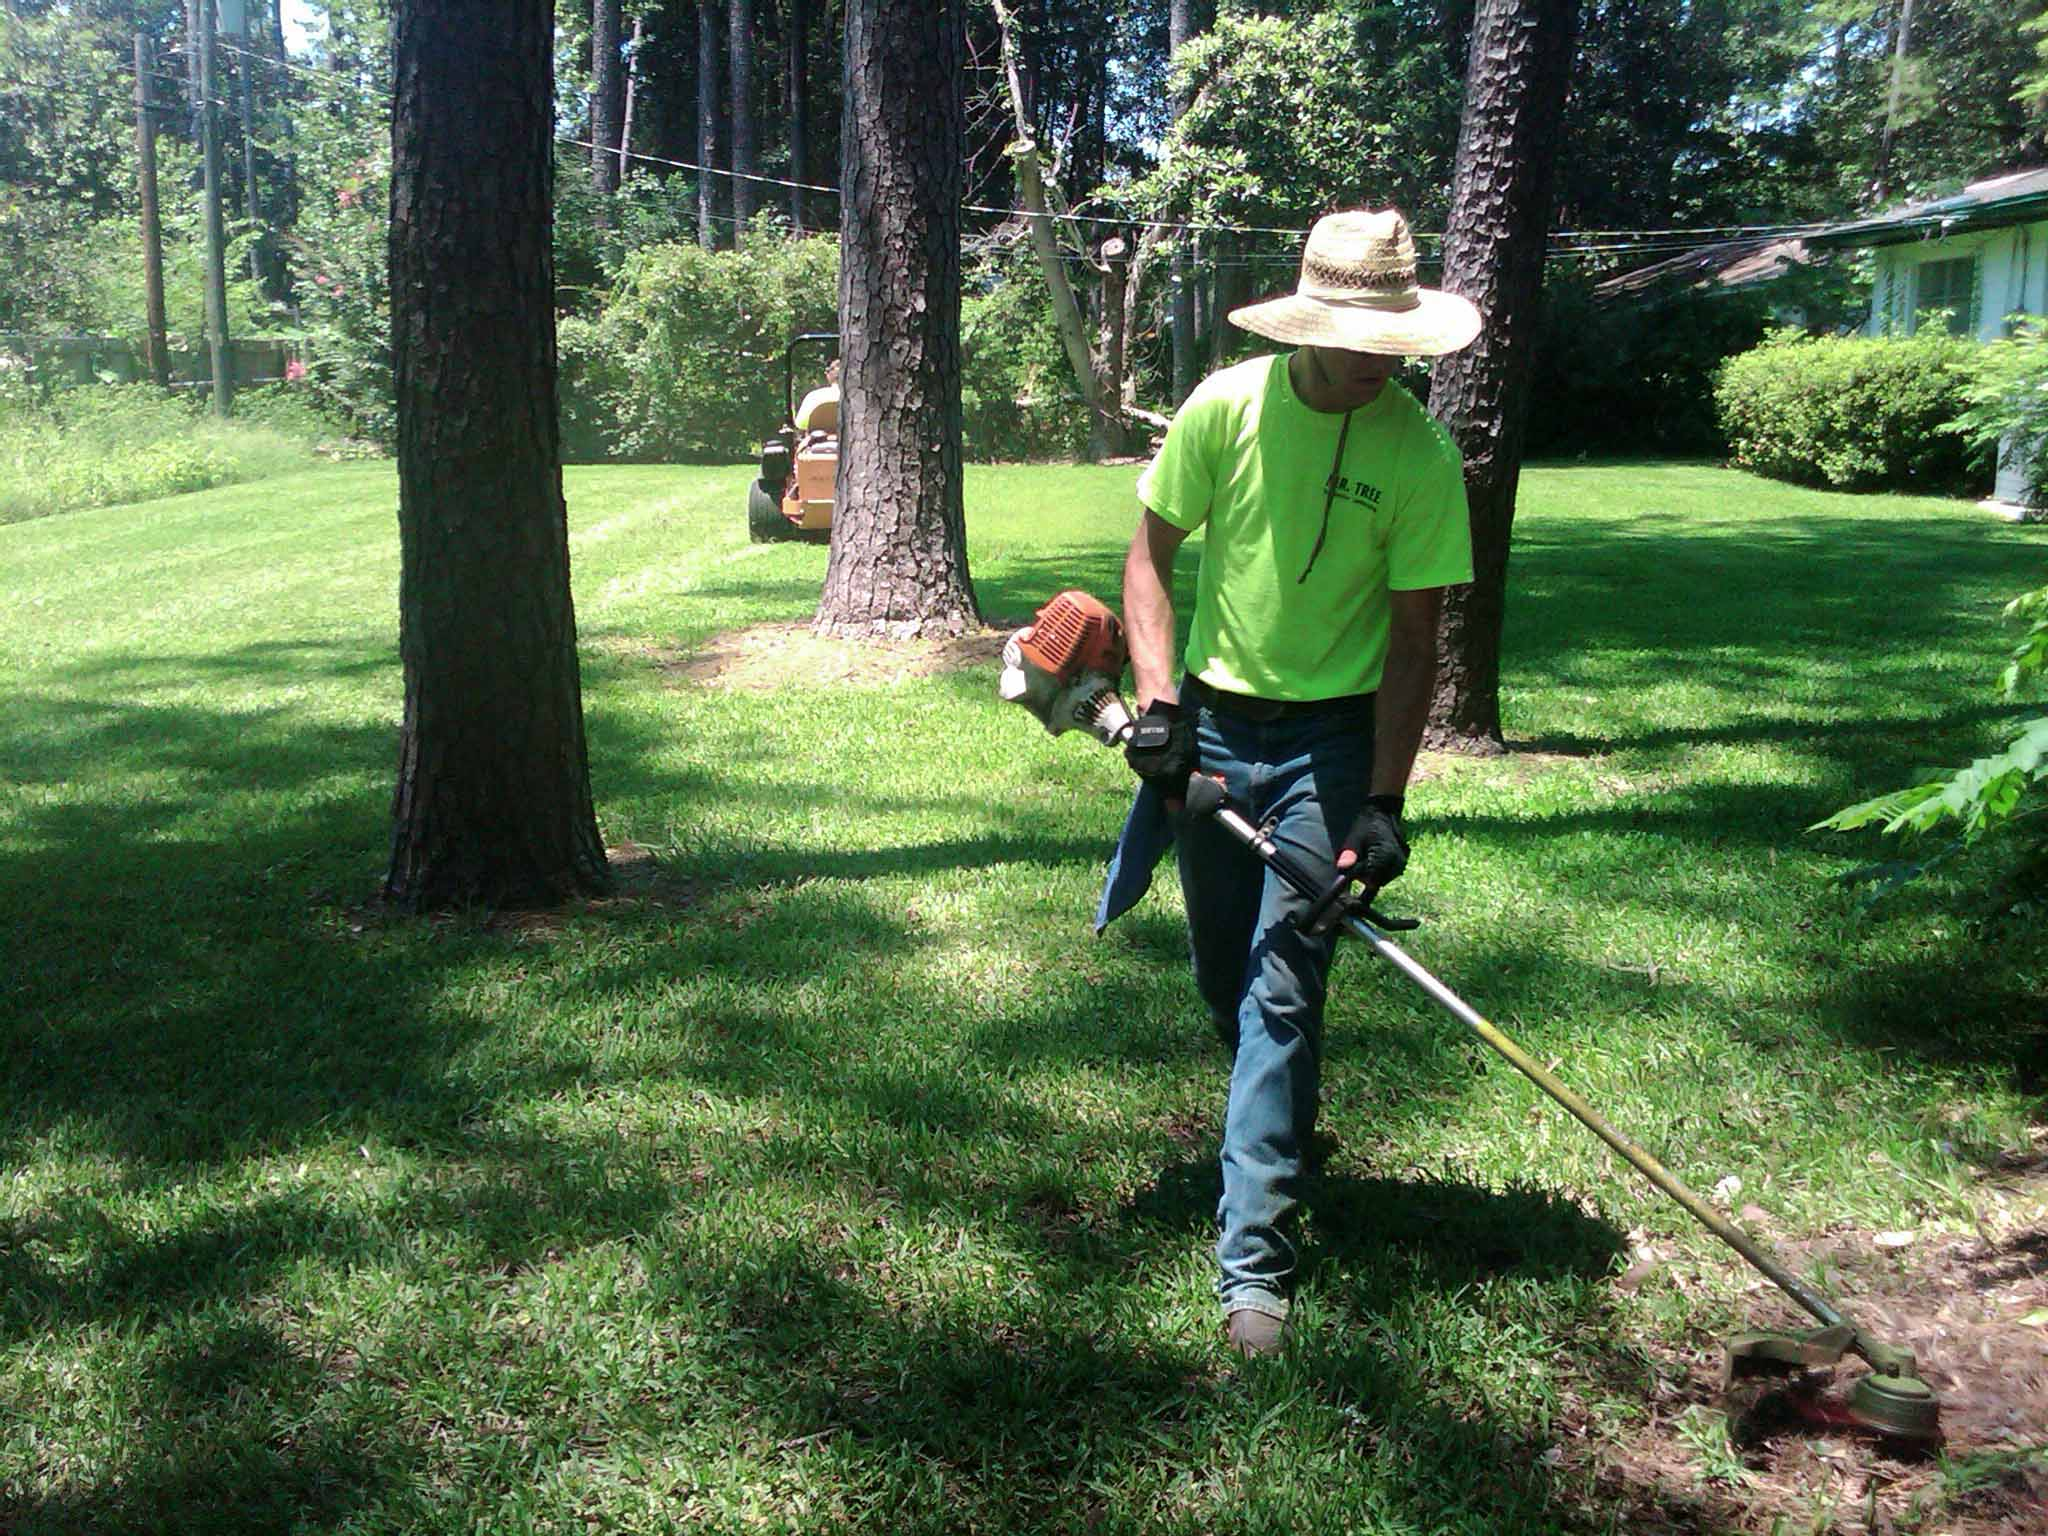 Lawn care gainesville fl mowing pruning mulching lawn for Lawn and garden services